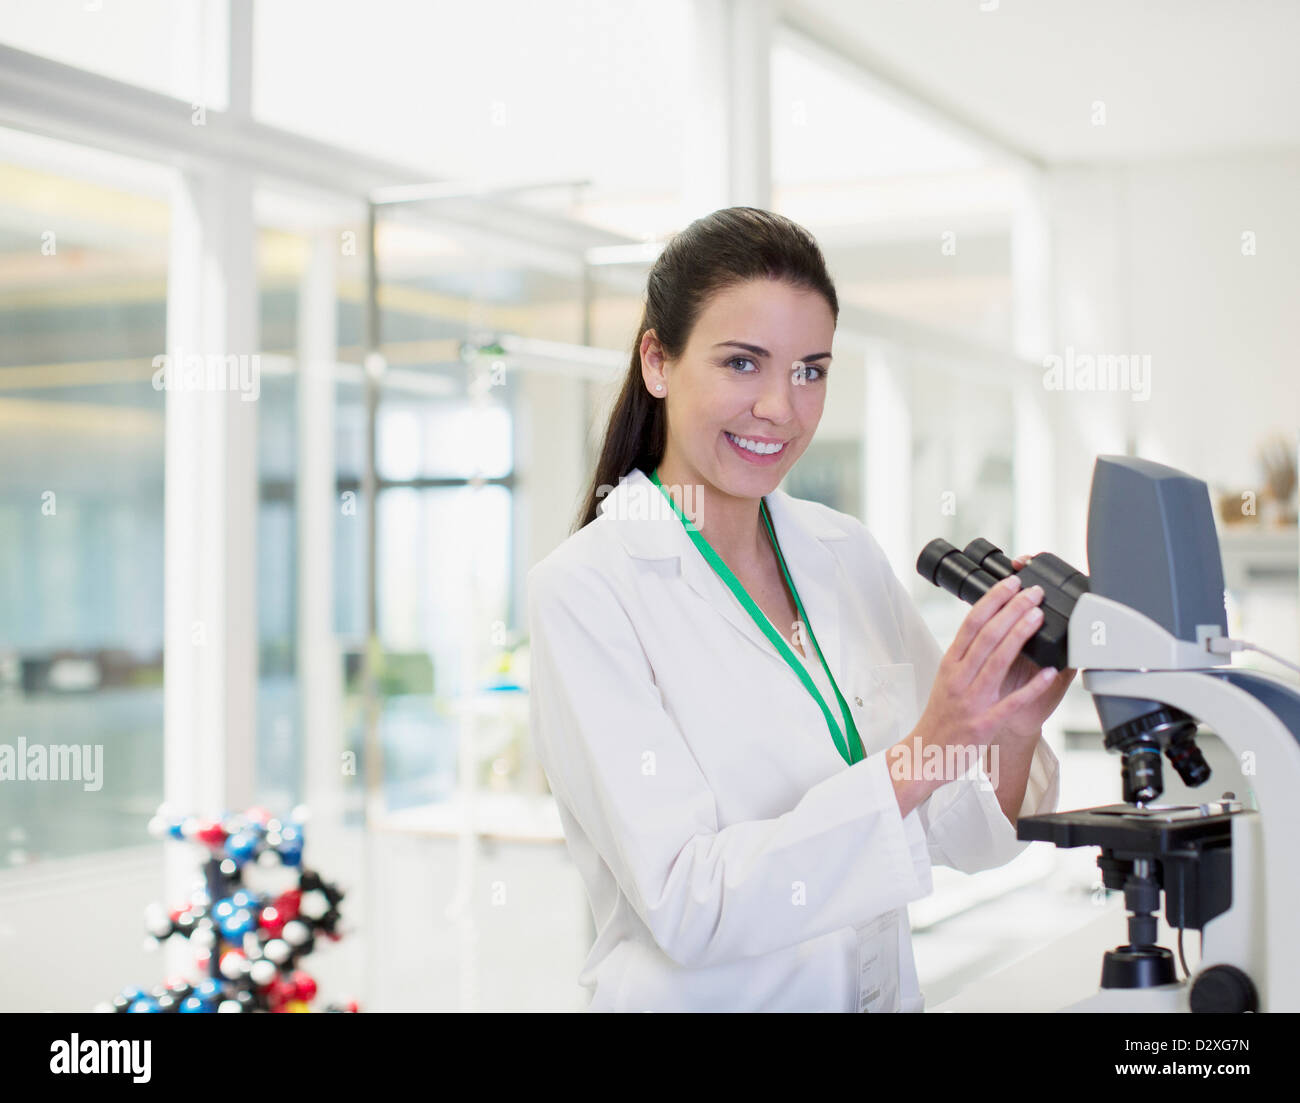 Portrait of confident scientist using microscope in laboratory - Stock Image